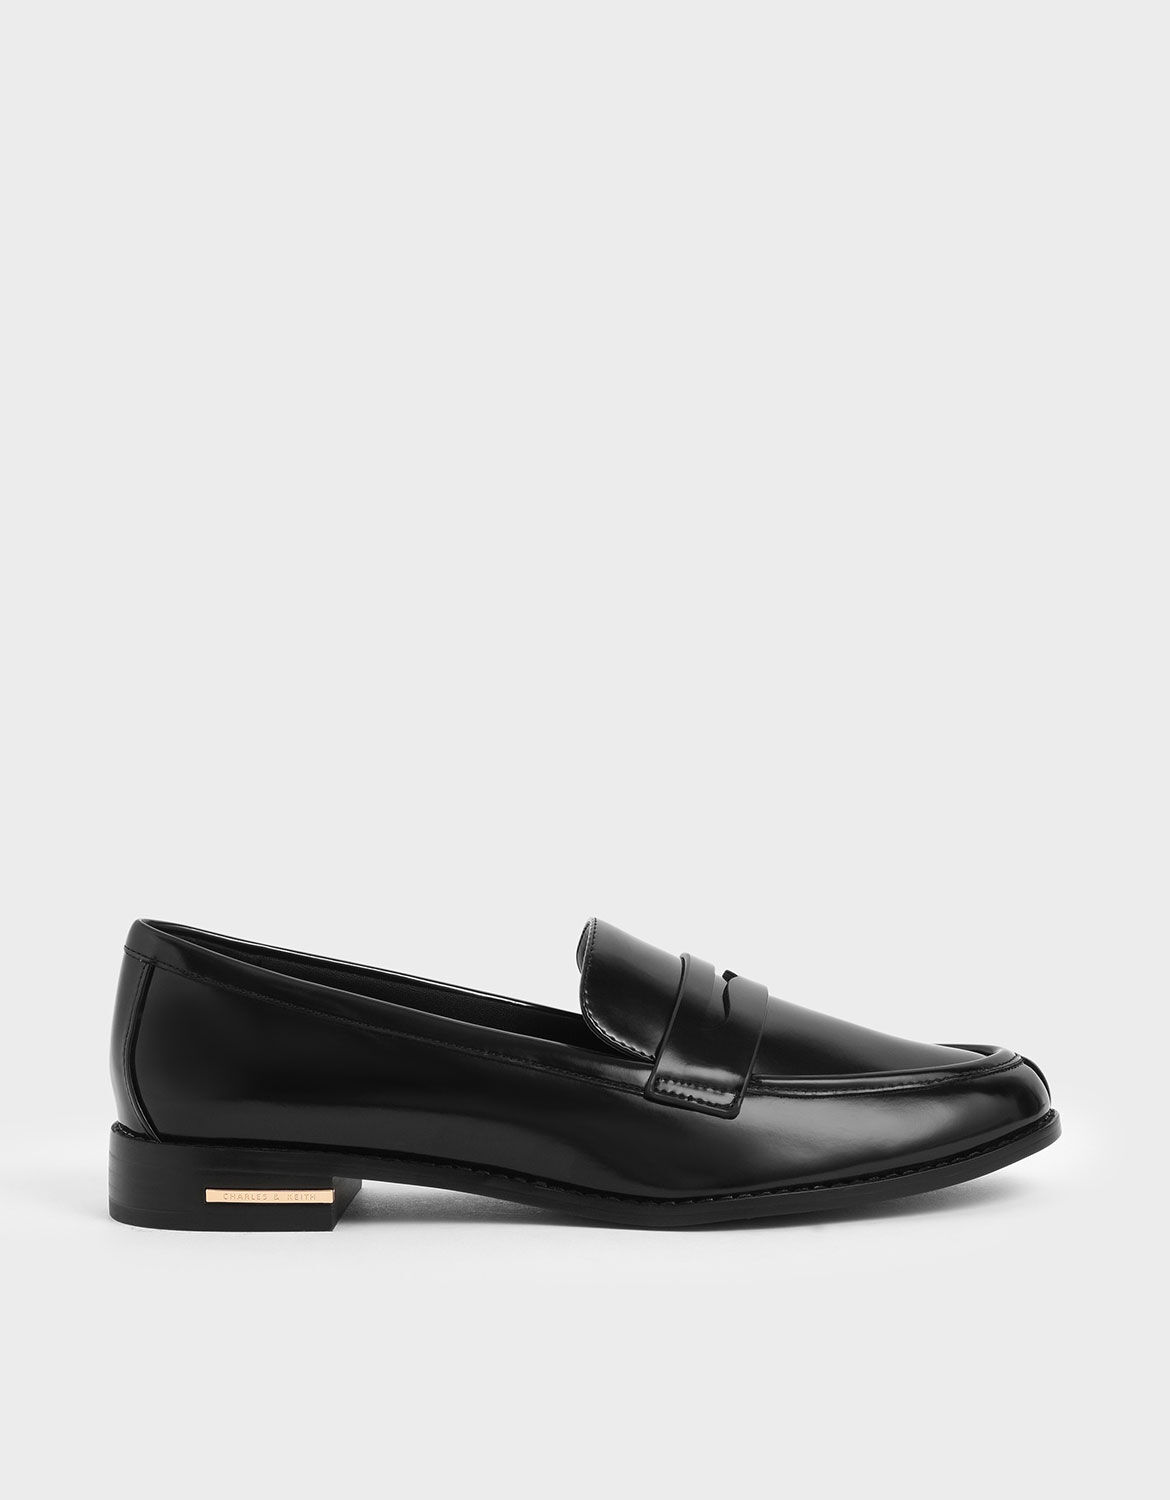 Classic Penny Loafers | CHARLES \u0026 KEITH